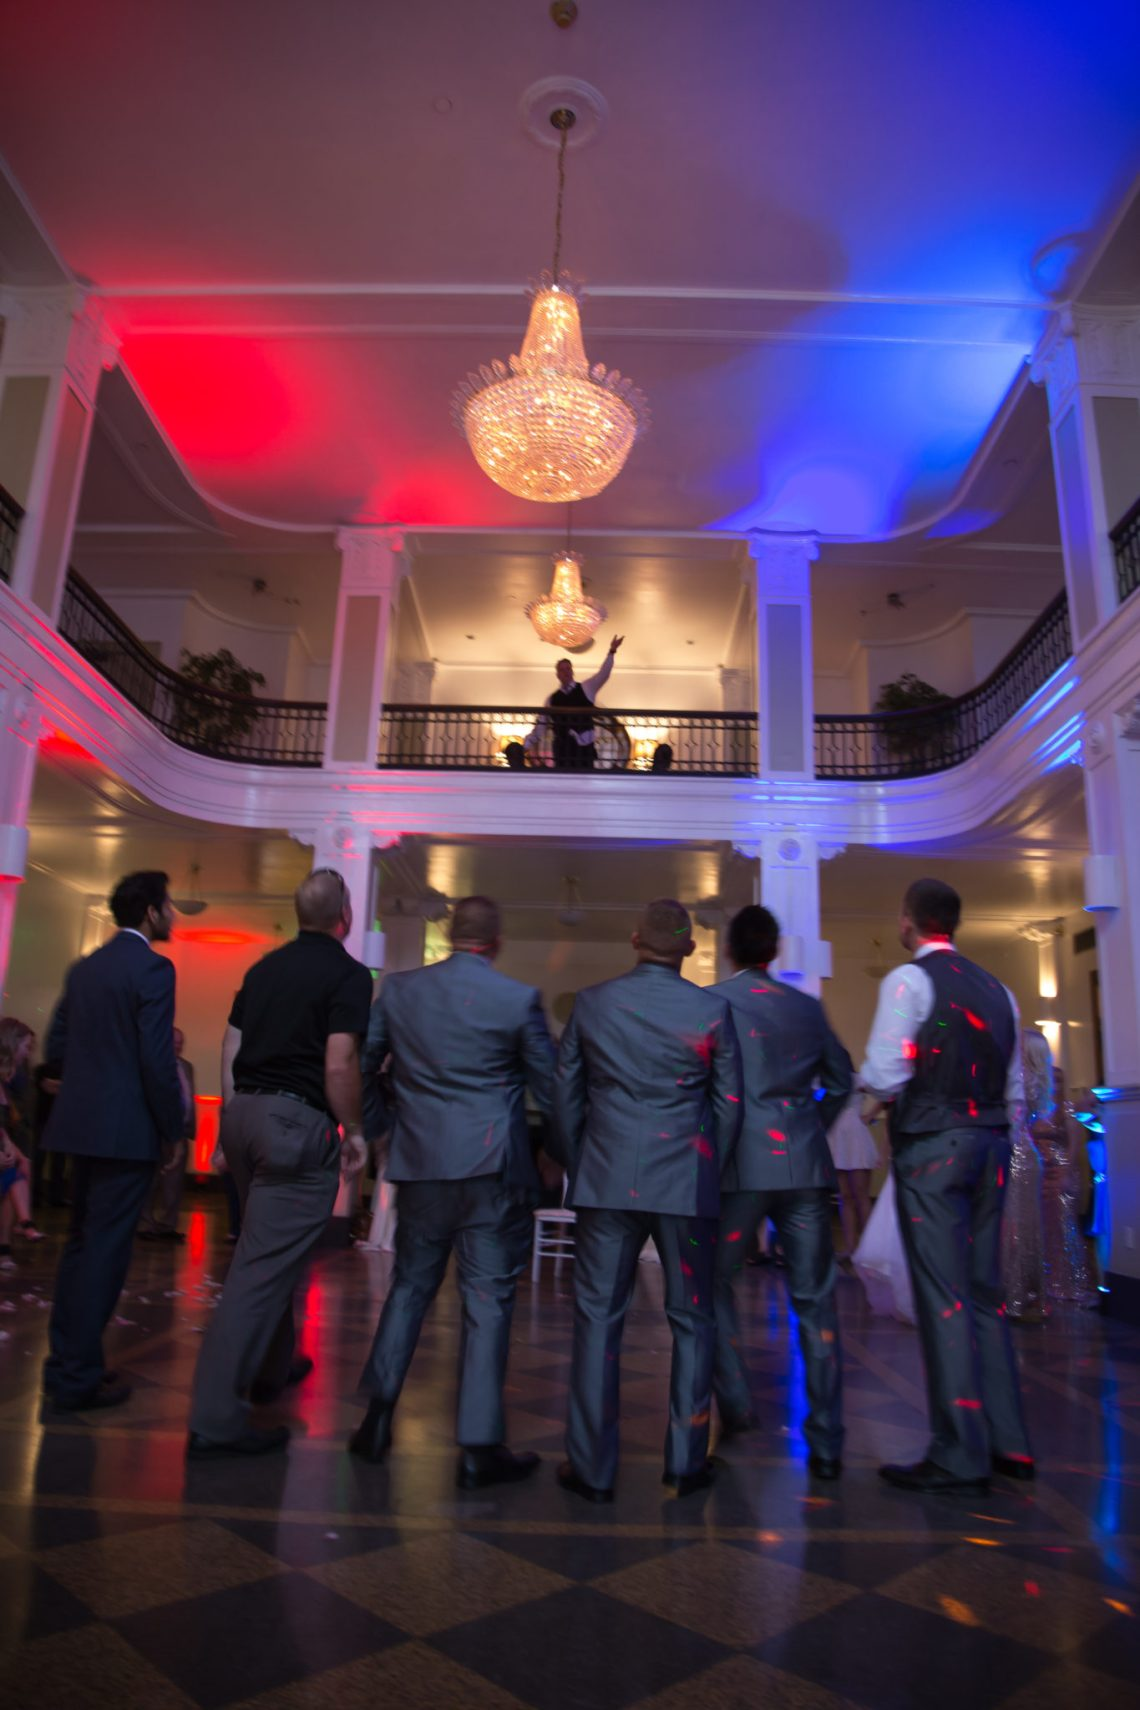 Aleshchenko Tosses 25 GLAM MONTE CRISTO BALLROOM WEDDING | EVERETT WEDDING PHOTOGRAPHER